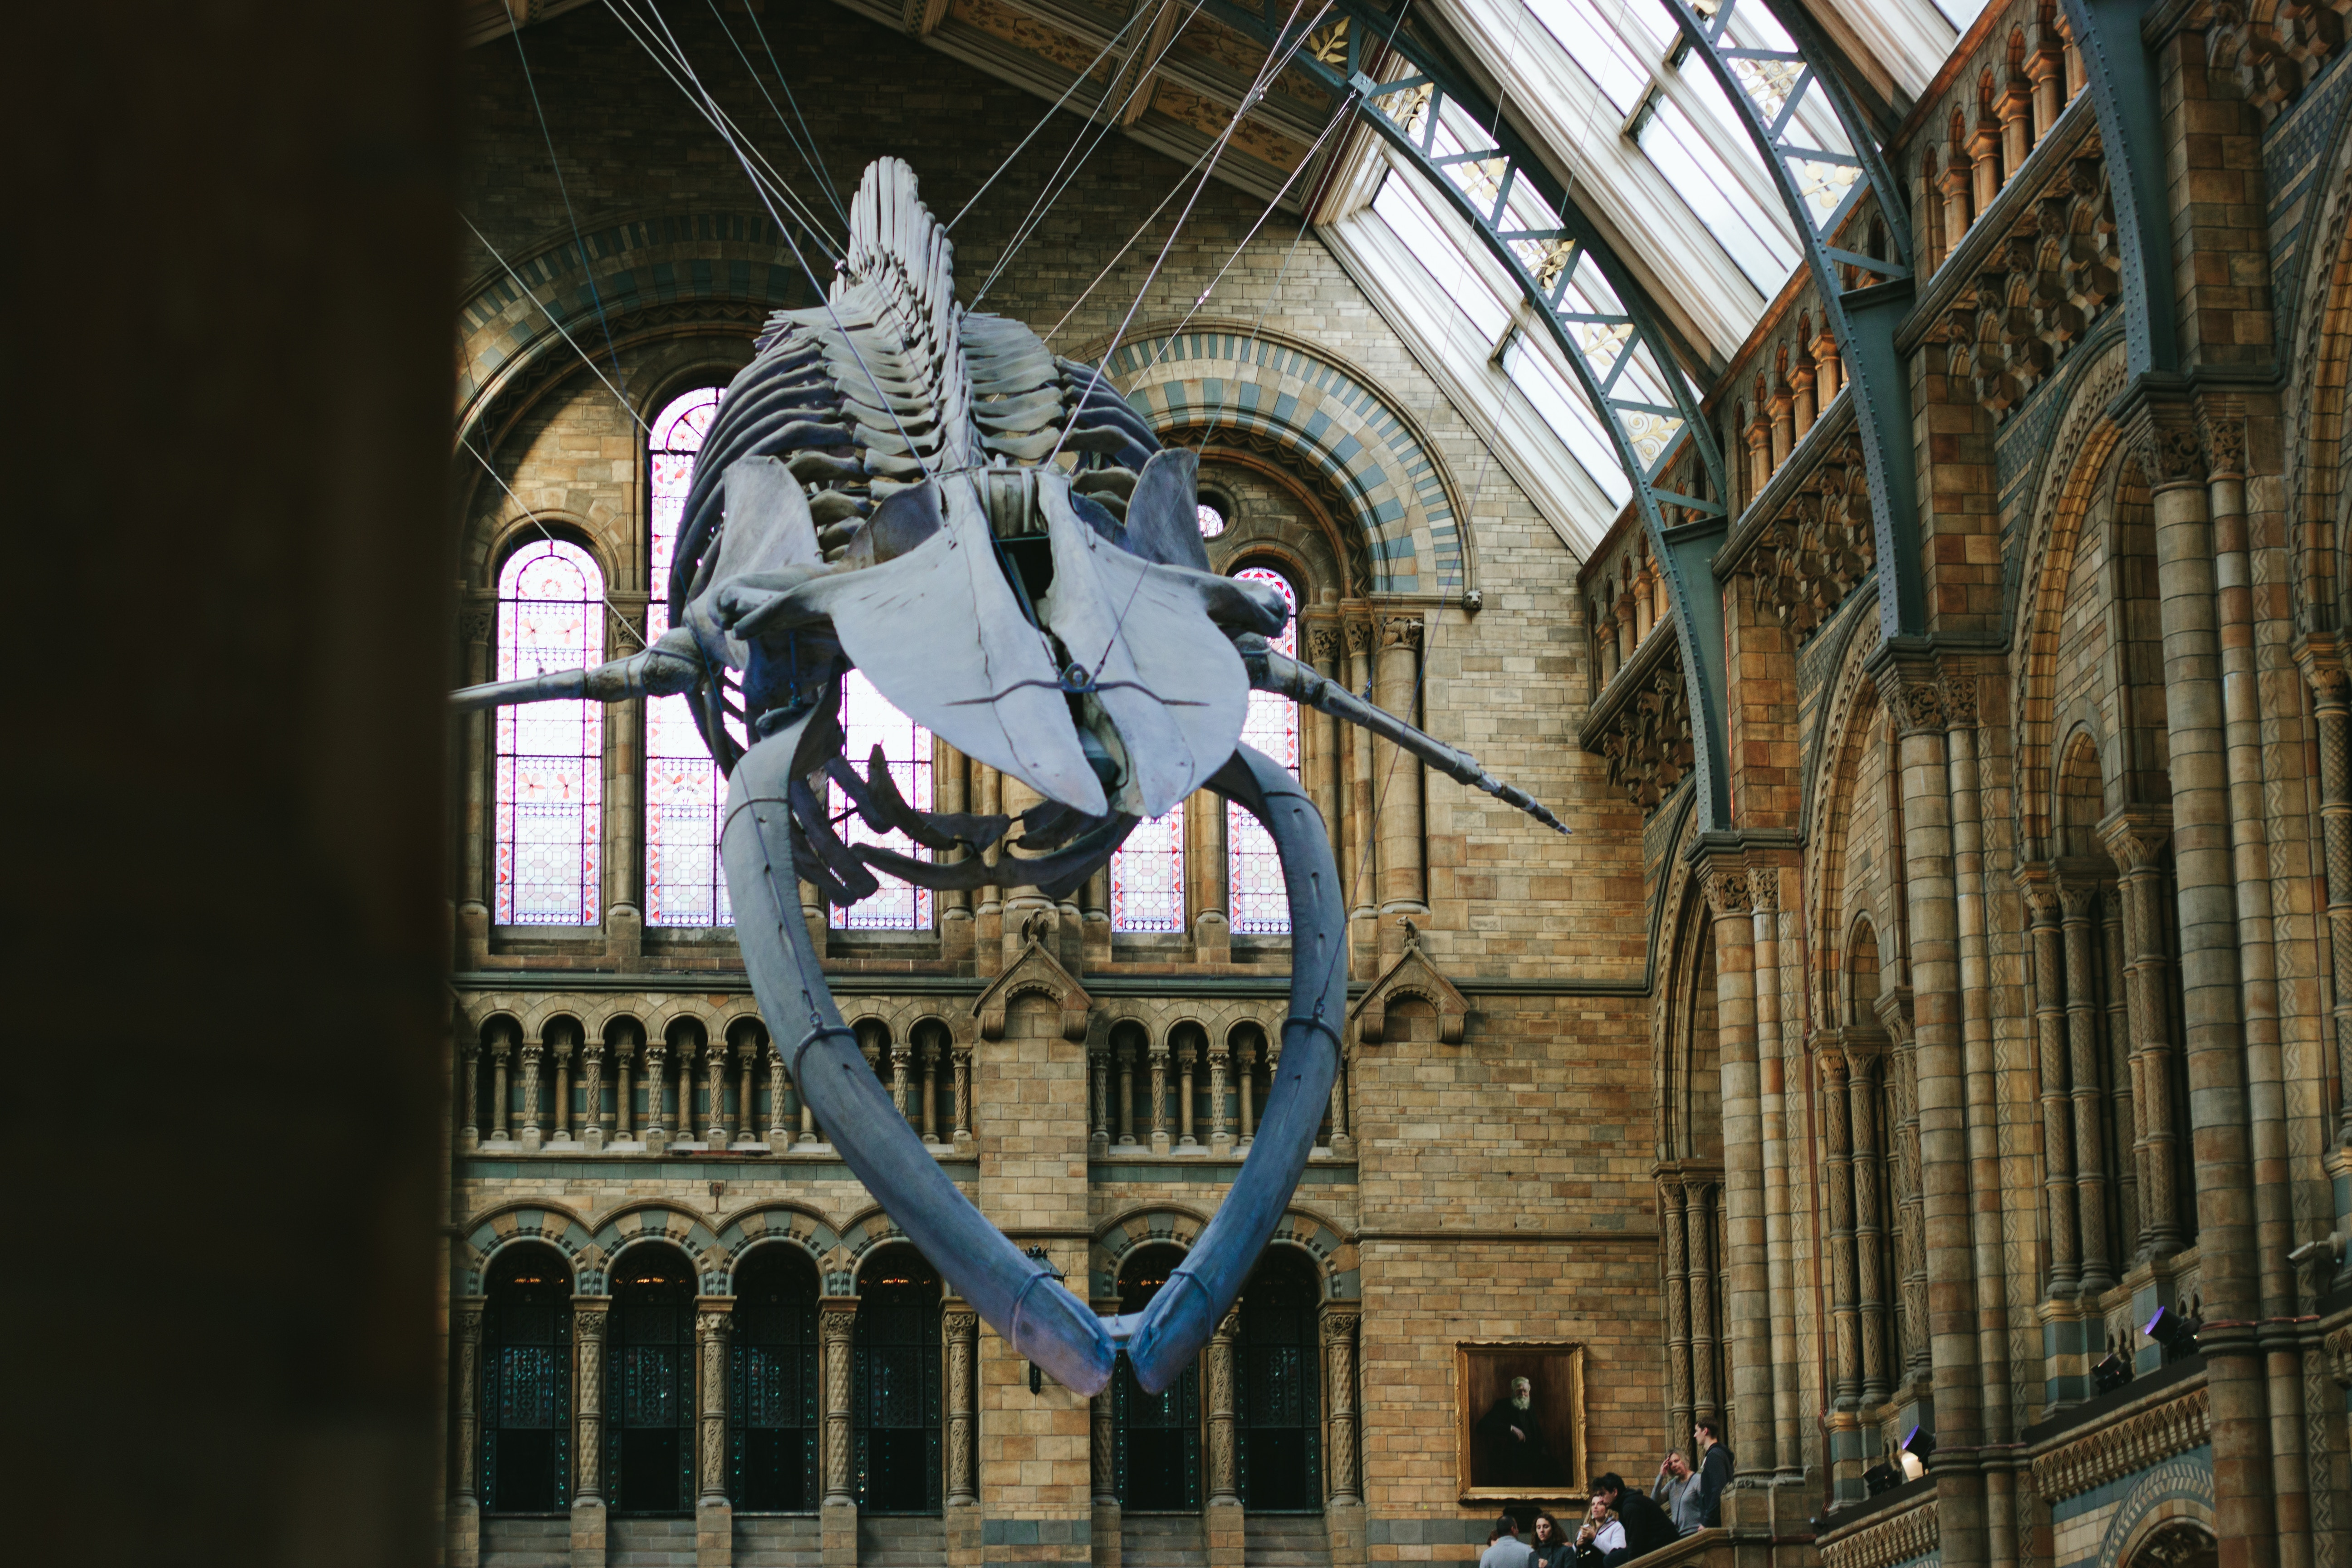 The whale at the Natural History Museum